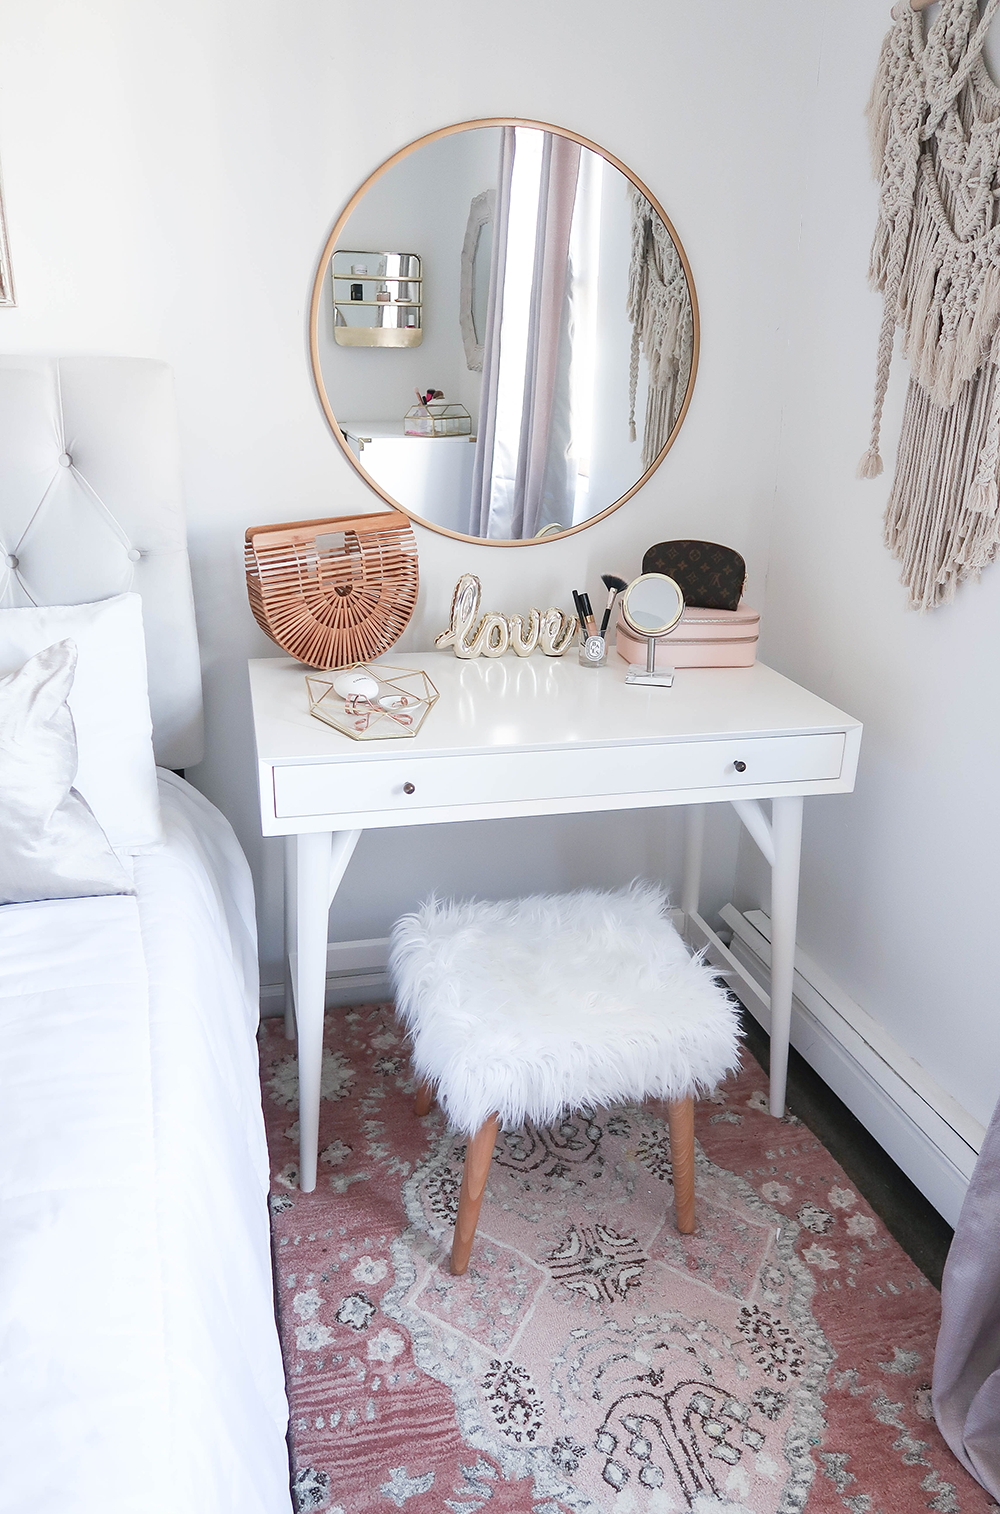 Styling A Vanity In A Small Space Gold Home Decor Room